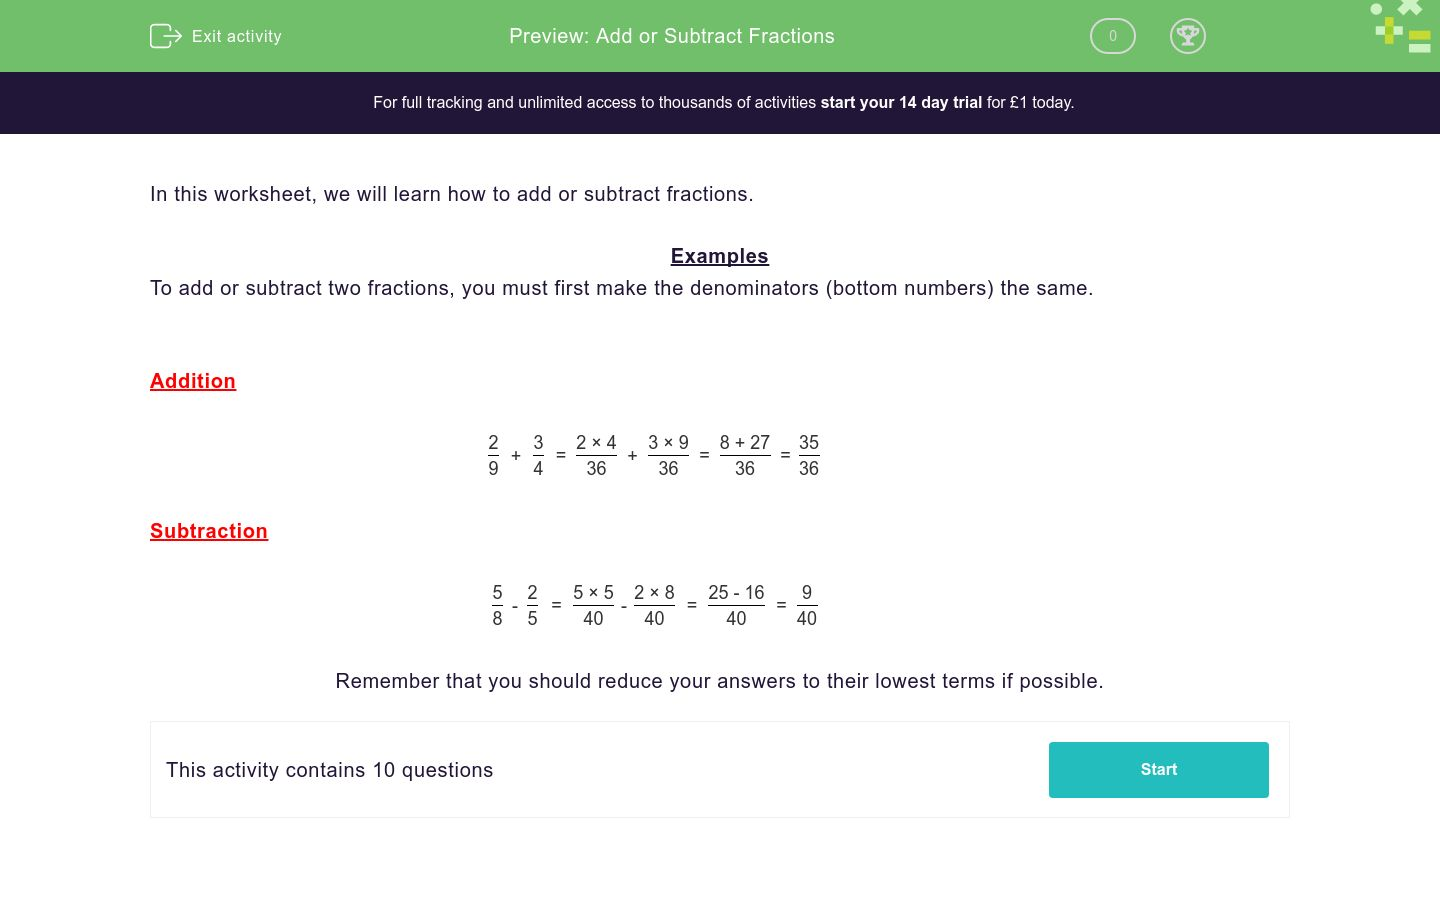 'Add or Subtract Fractions' worksheet